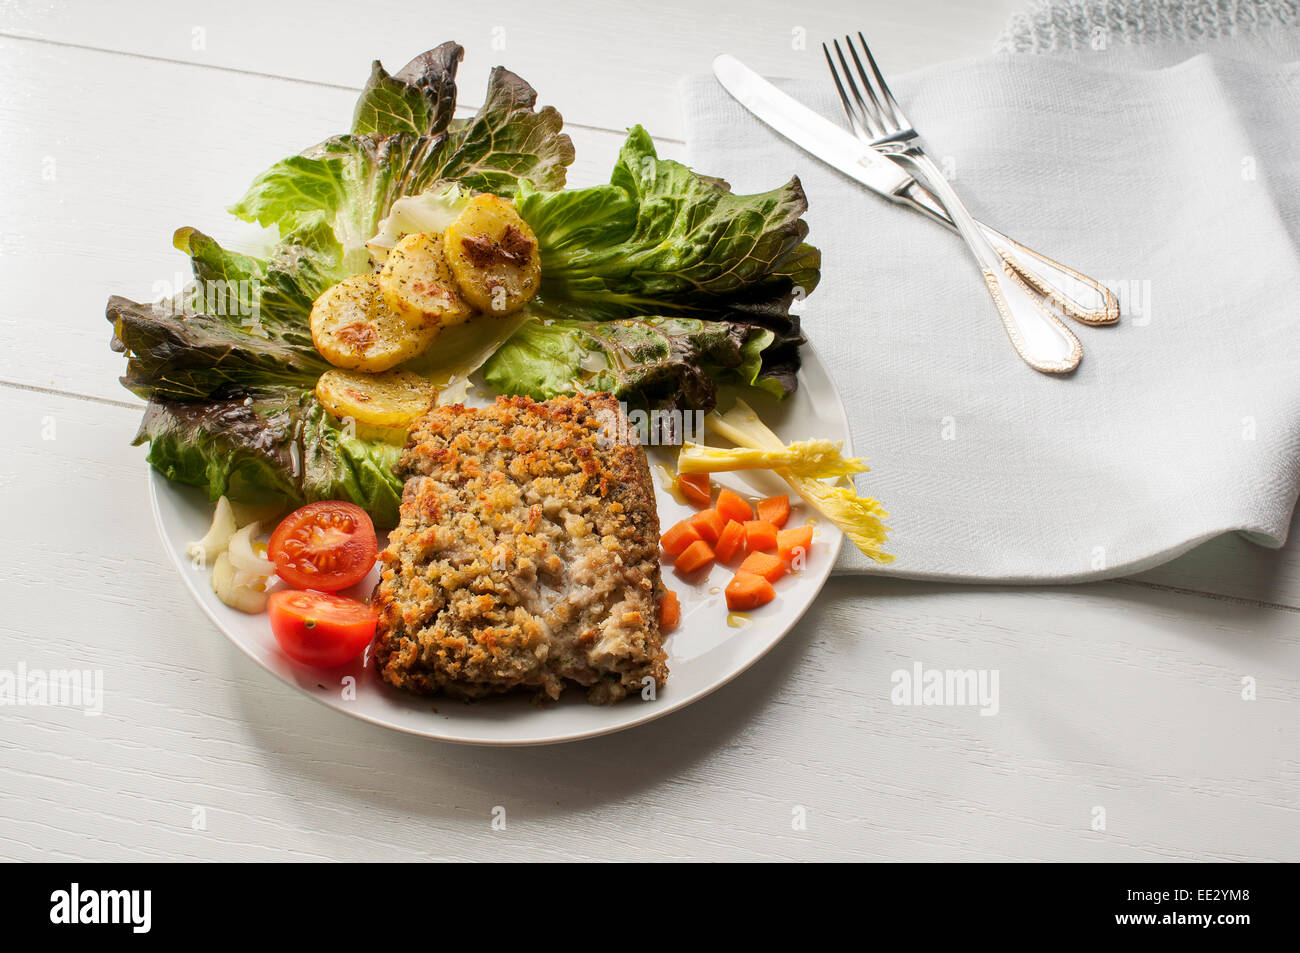 cod fillet breaded and baked with potatoes and salad as garnishing - Stock Image